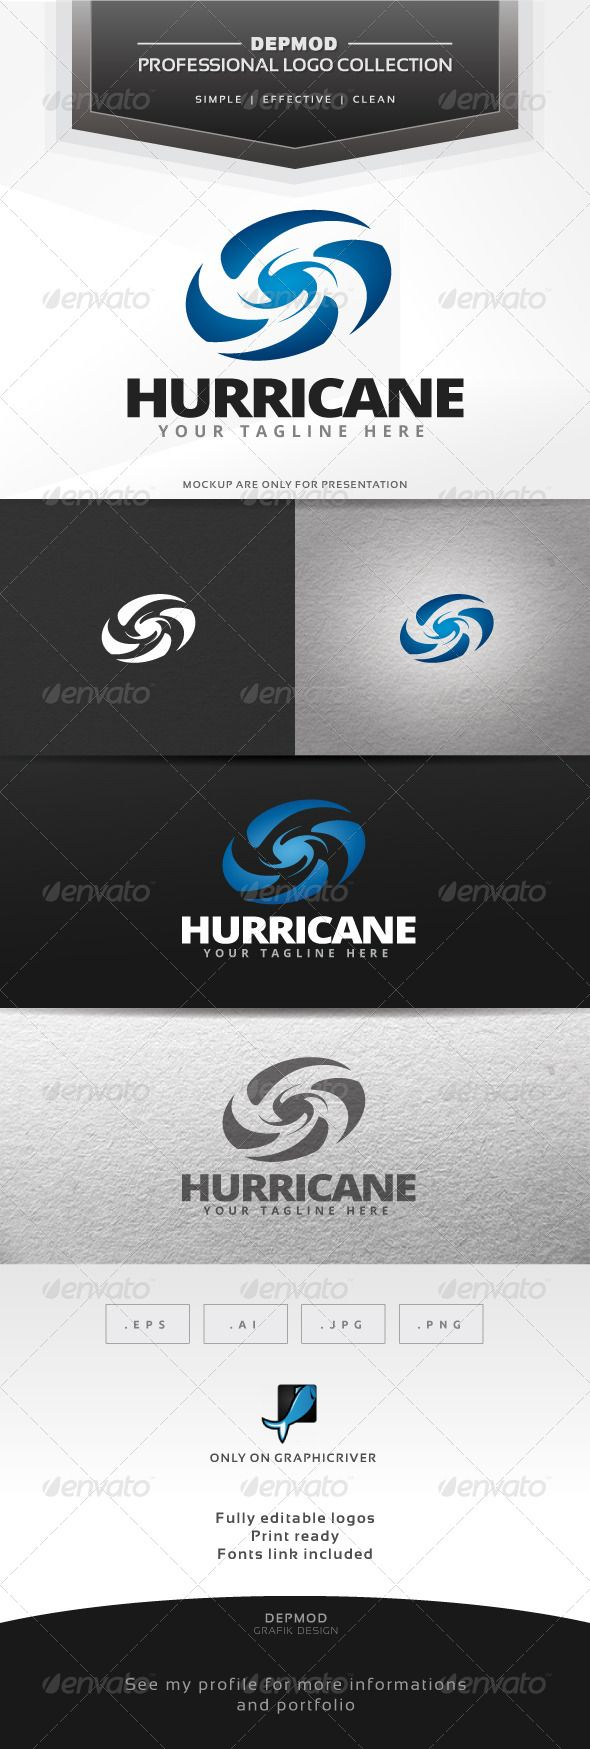 Hurricane Logo — Vector EPS #tornado #web • Available here → https://graphicriver.net/item/hurricane-logo/7014192?ref=pxcr